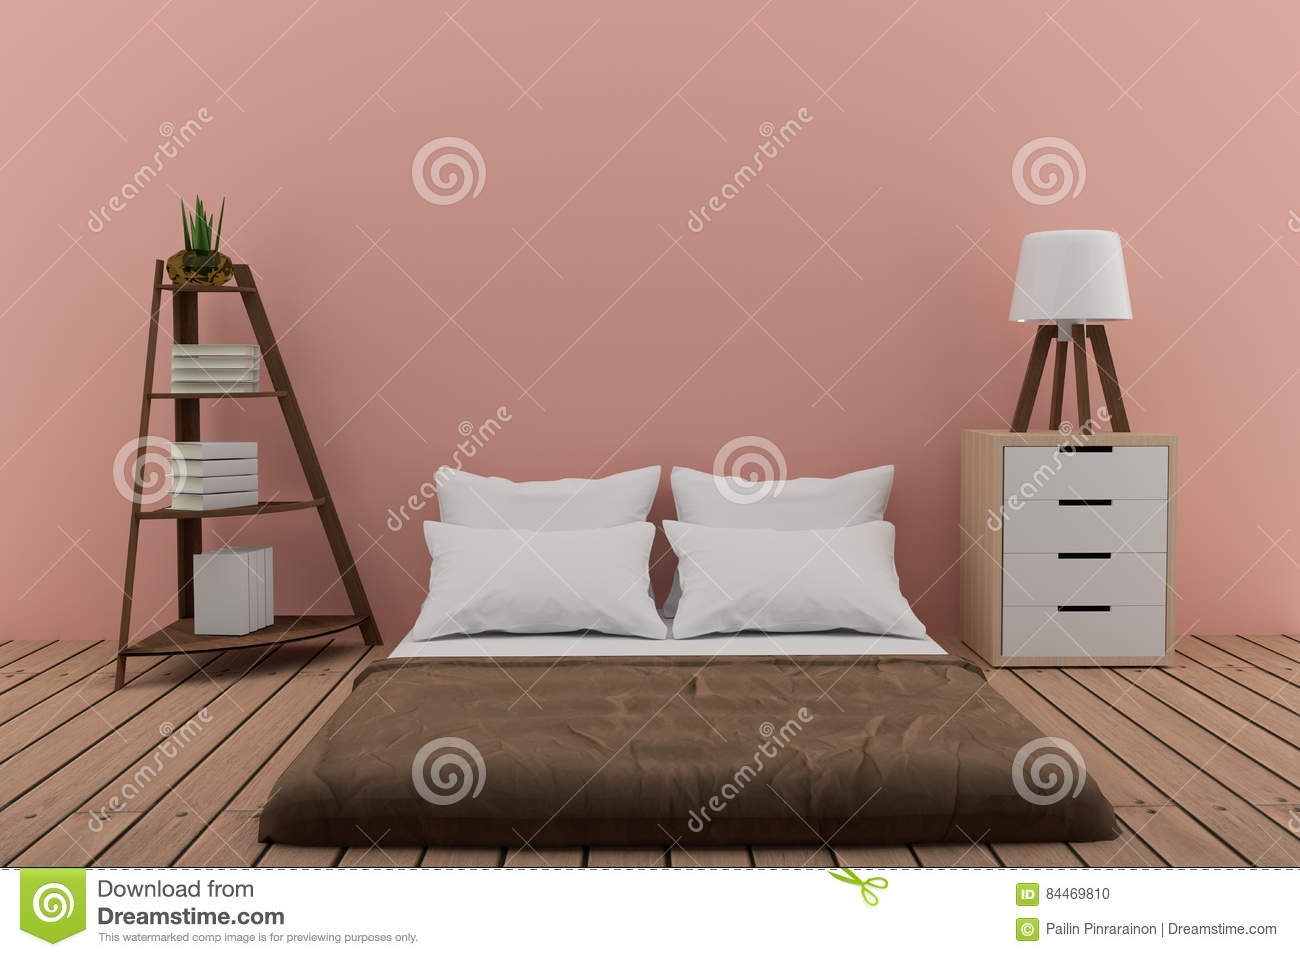 Download Bedroom With Bookshelf Small Lamp And Cabinet In Pink Room 3d Rendering Stock